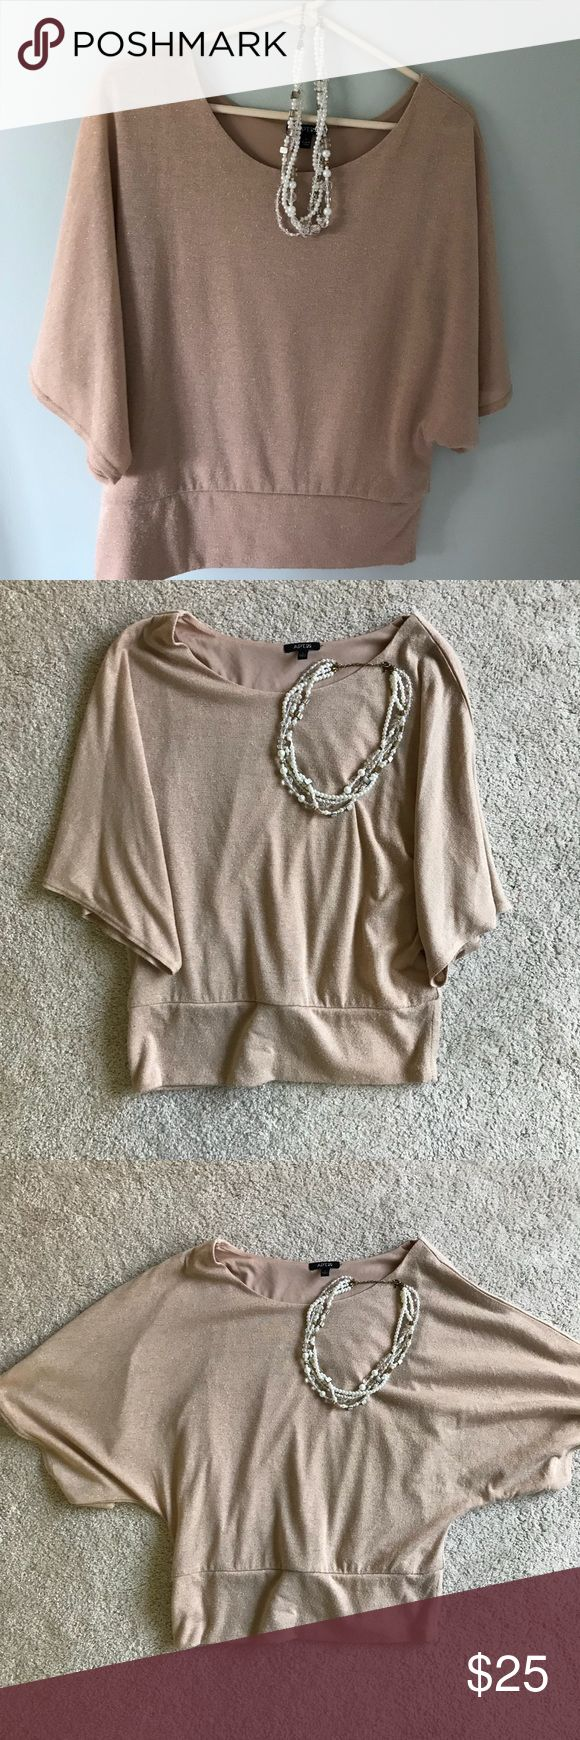 {Apt. 9} Gold Shirt, L Batwing style sleeve, size large, gold flakes, cuffed bottom Apt. 9 Tops